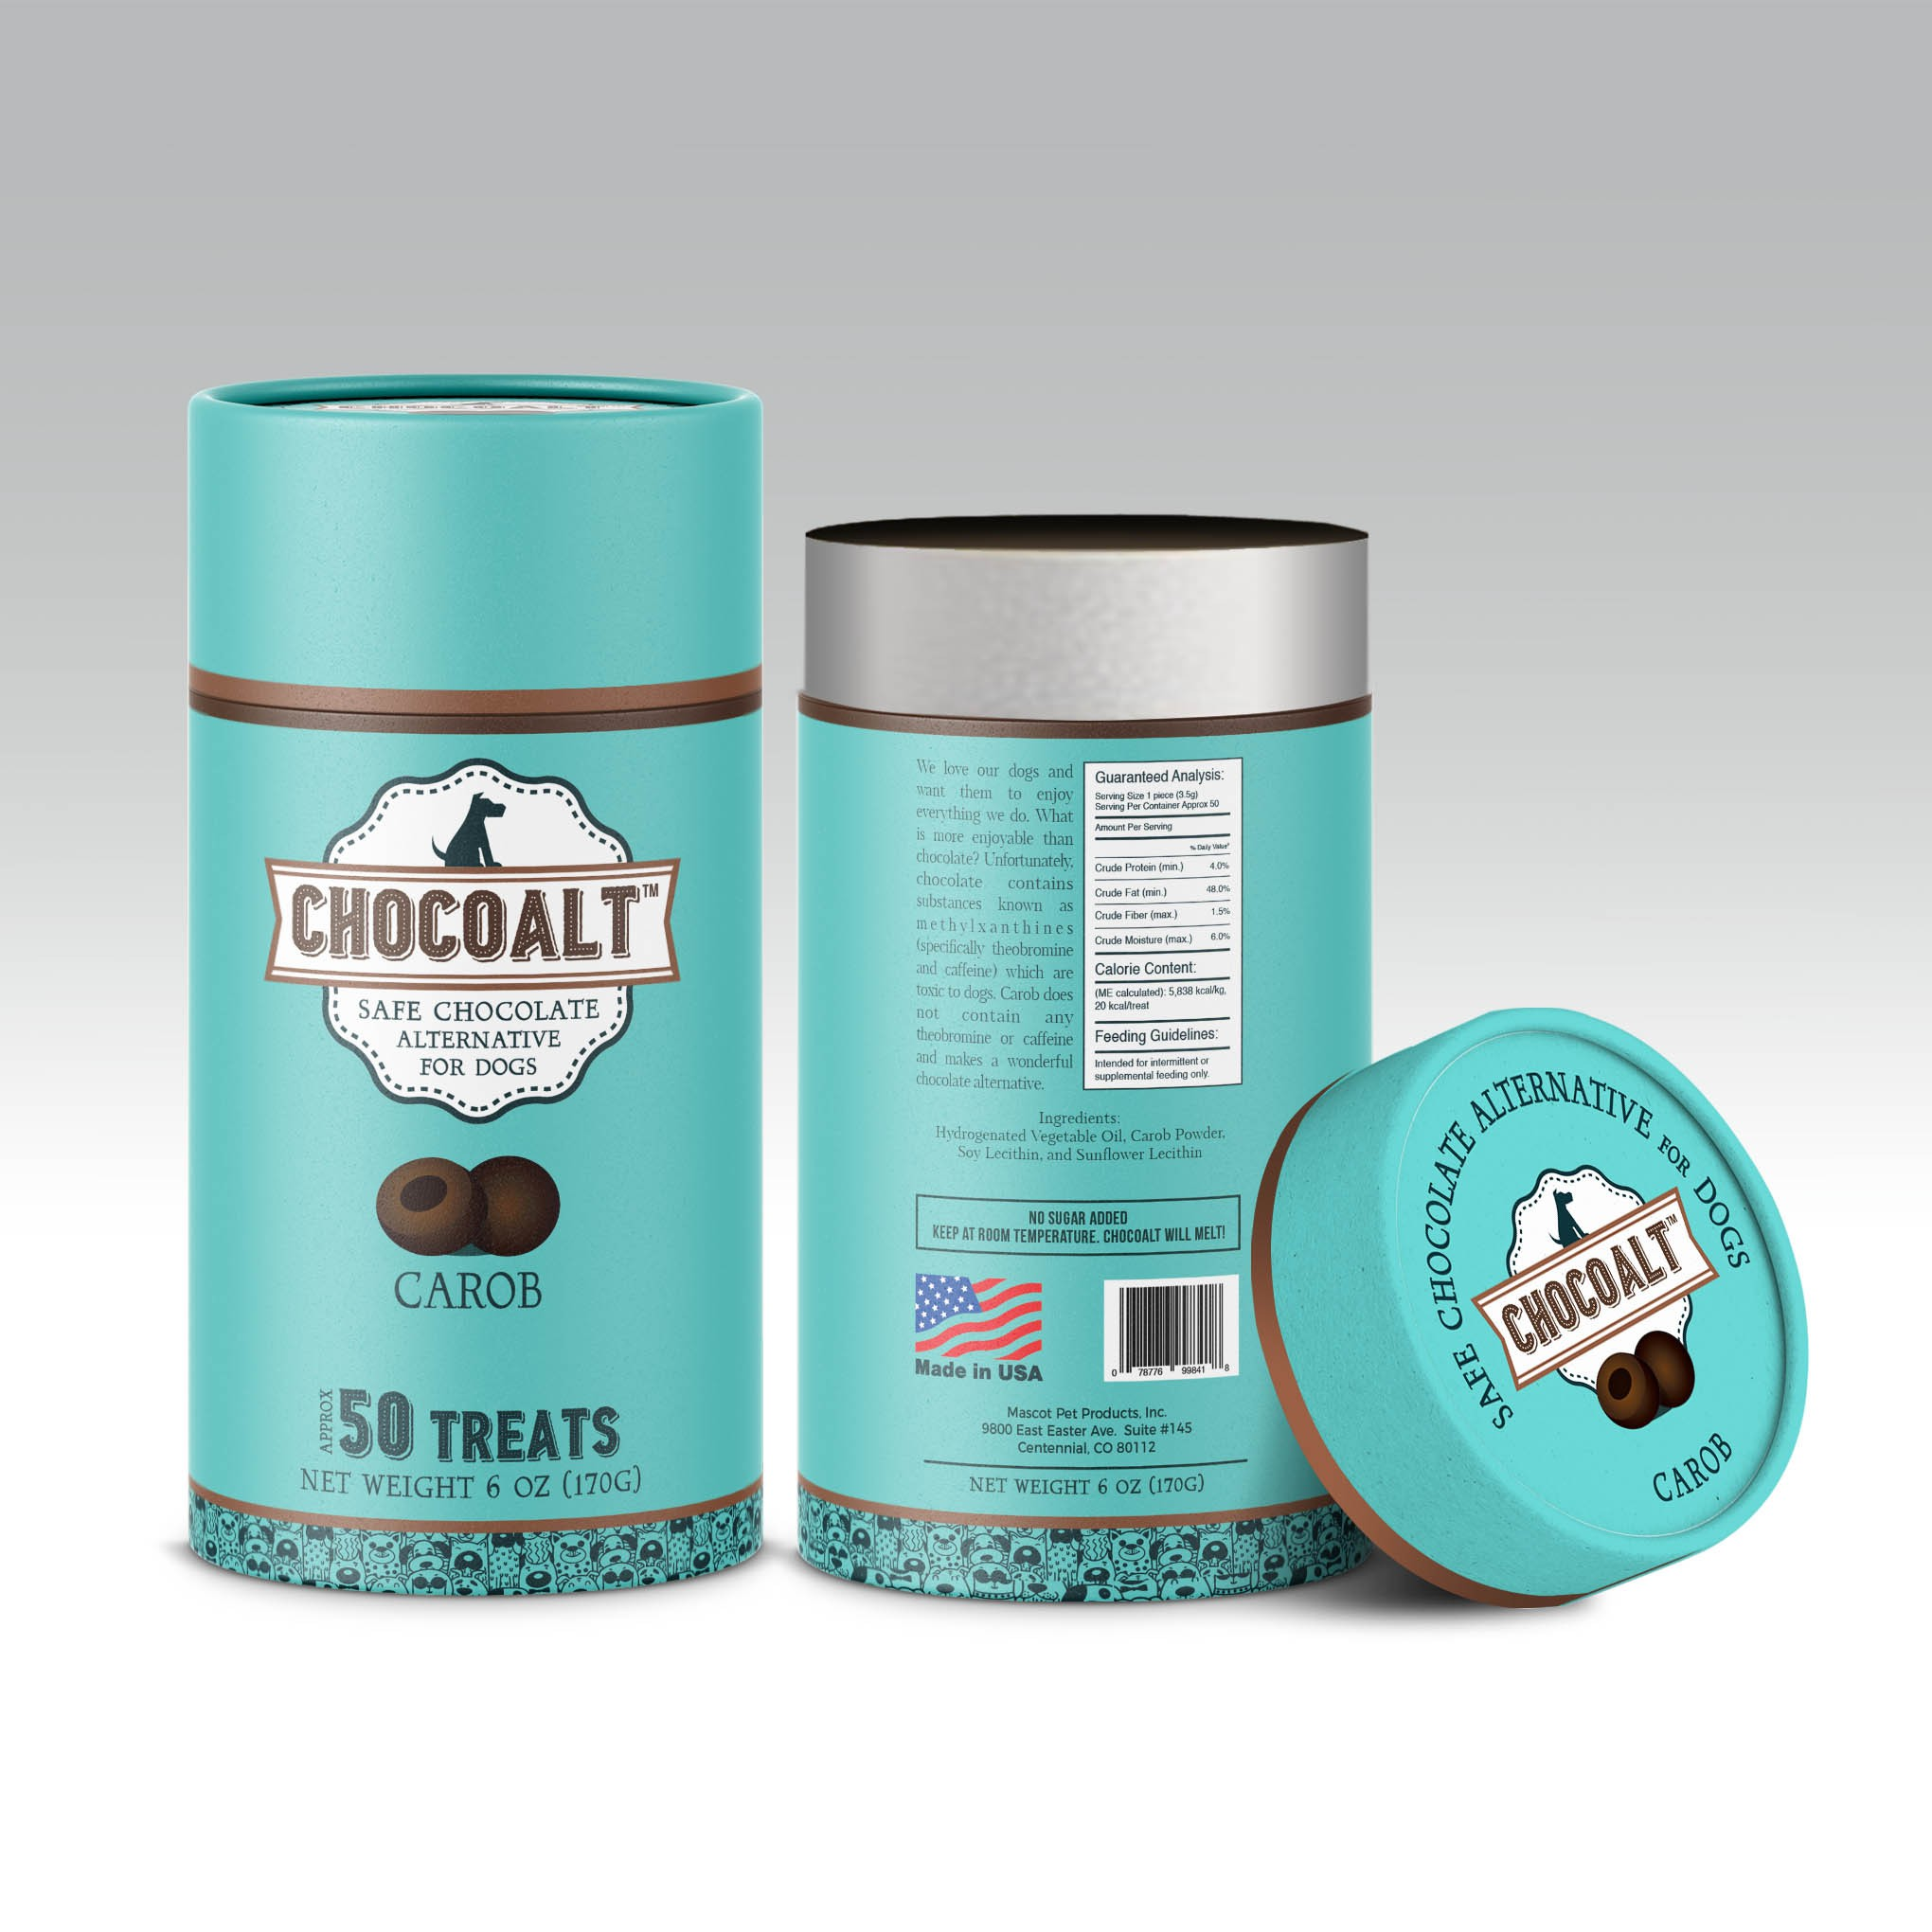 Need revision to Chocoalt Packaing you designed